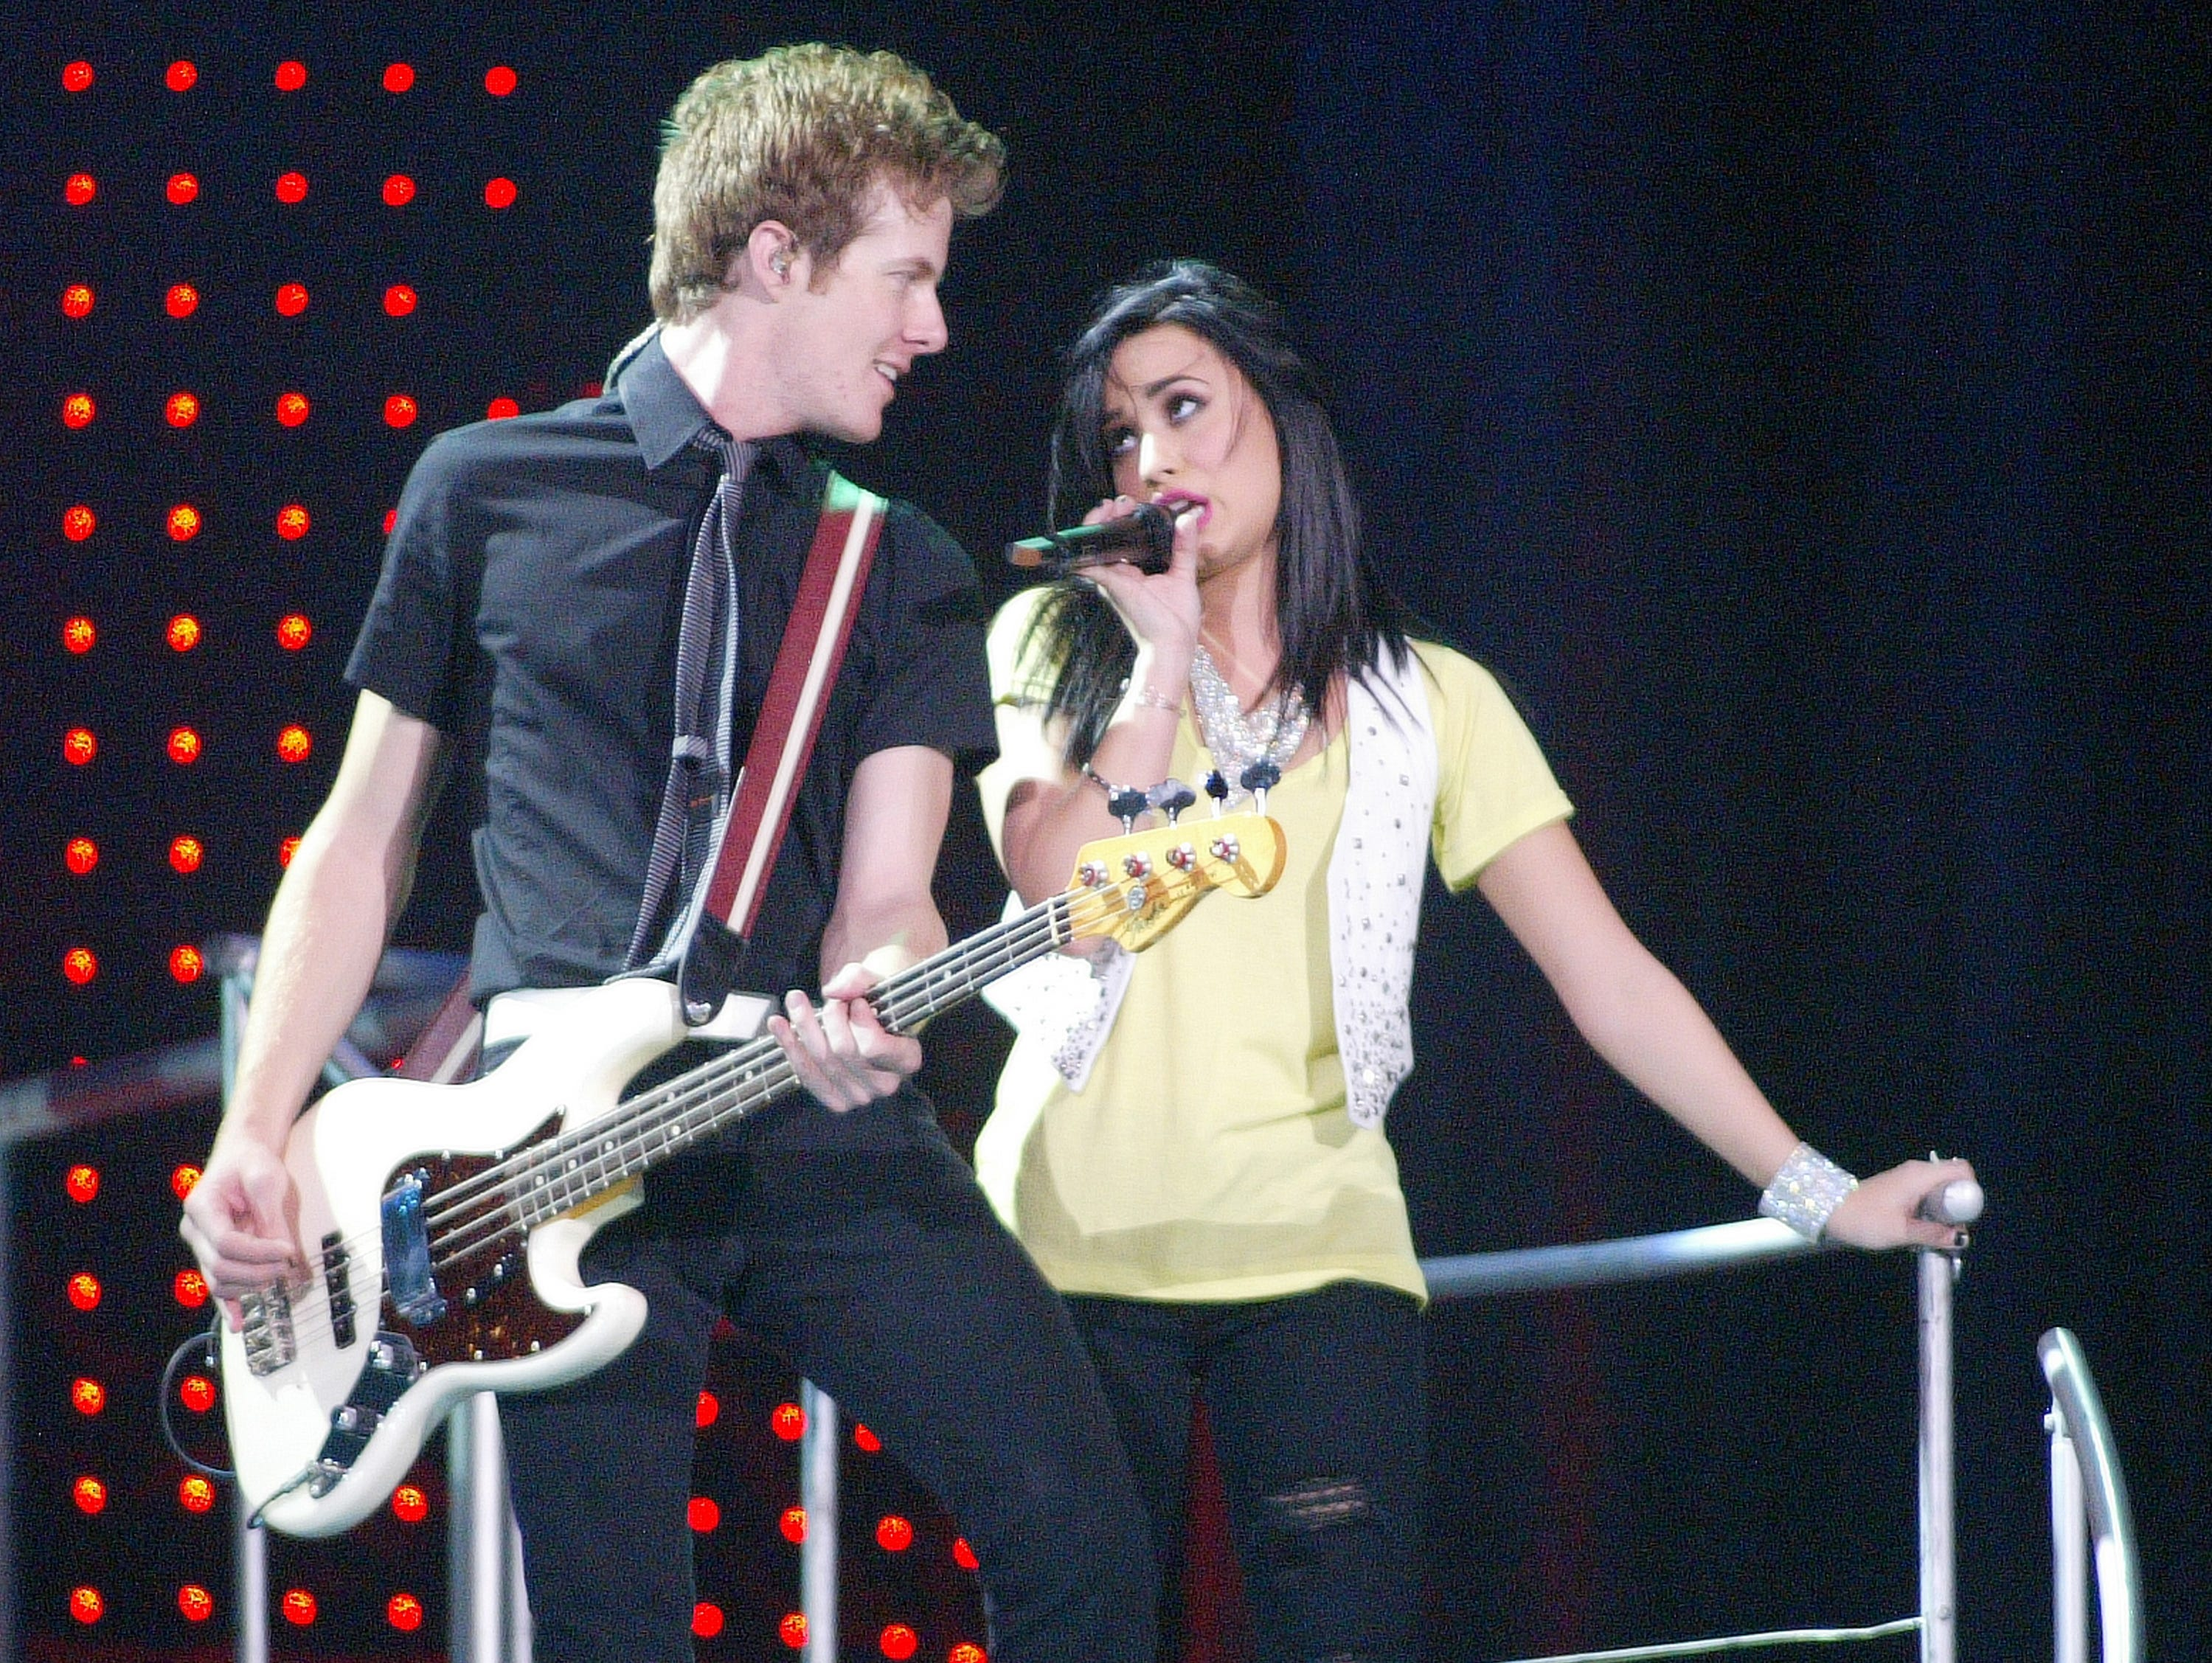 Disney Channel star Demi Lovato  performs at the US Bank Arena on Saturday, July 25, 2009.